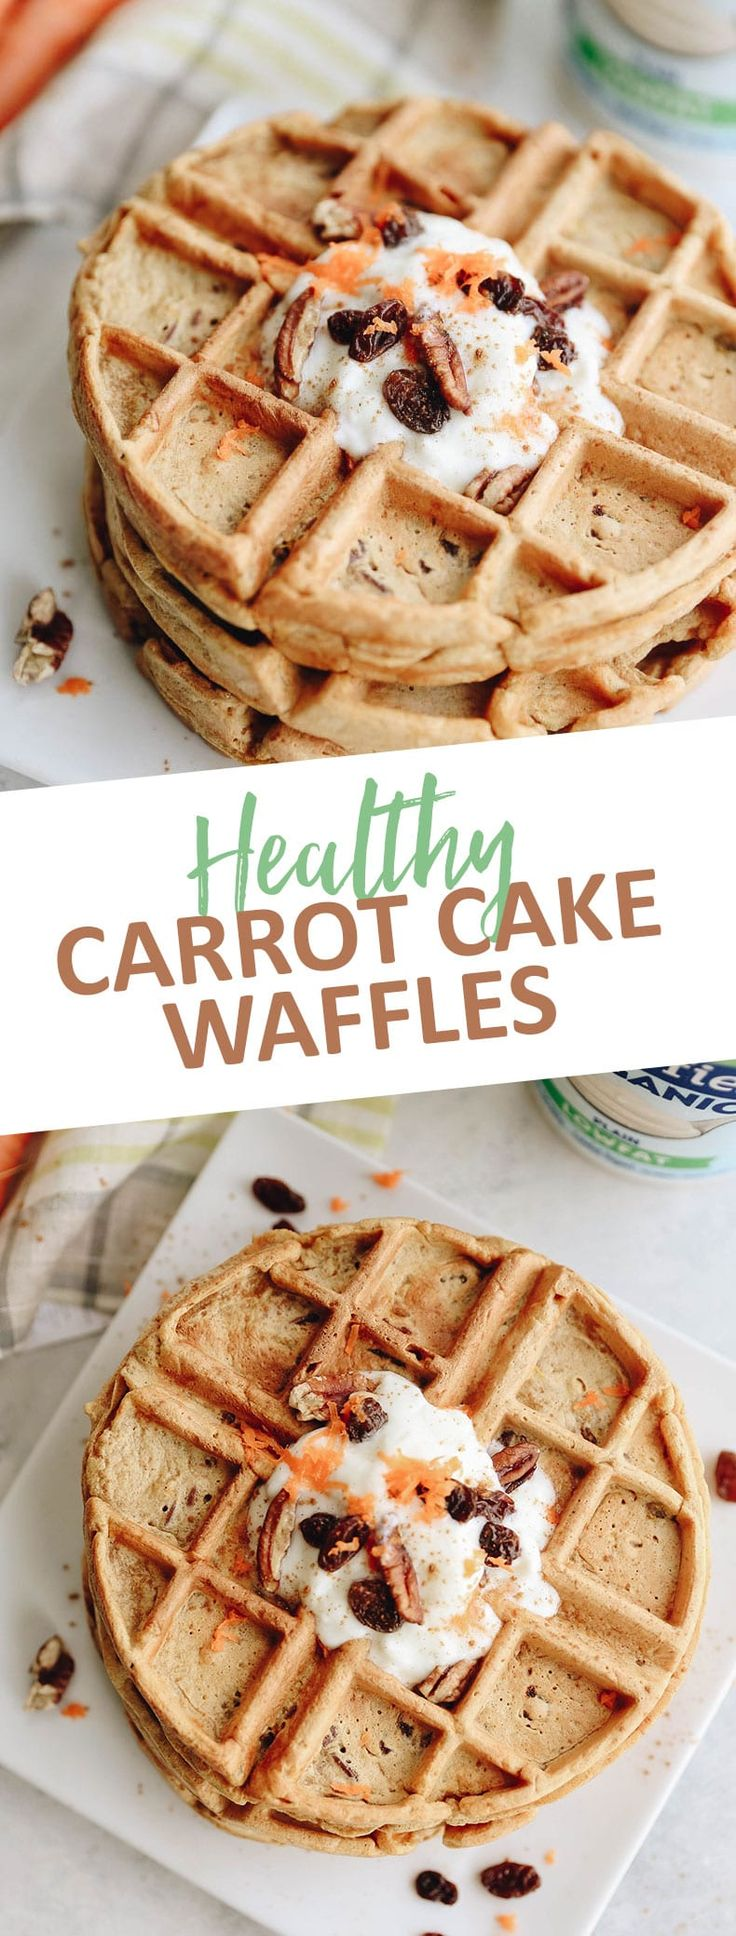 Start your day off on the right foot with these healthy carrot cake waffles. Made with delicious and nutritious ingredients for a healthy breakfast or...